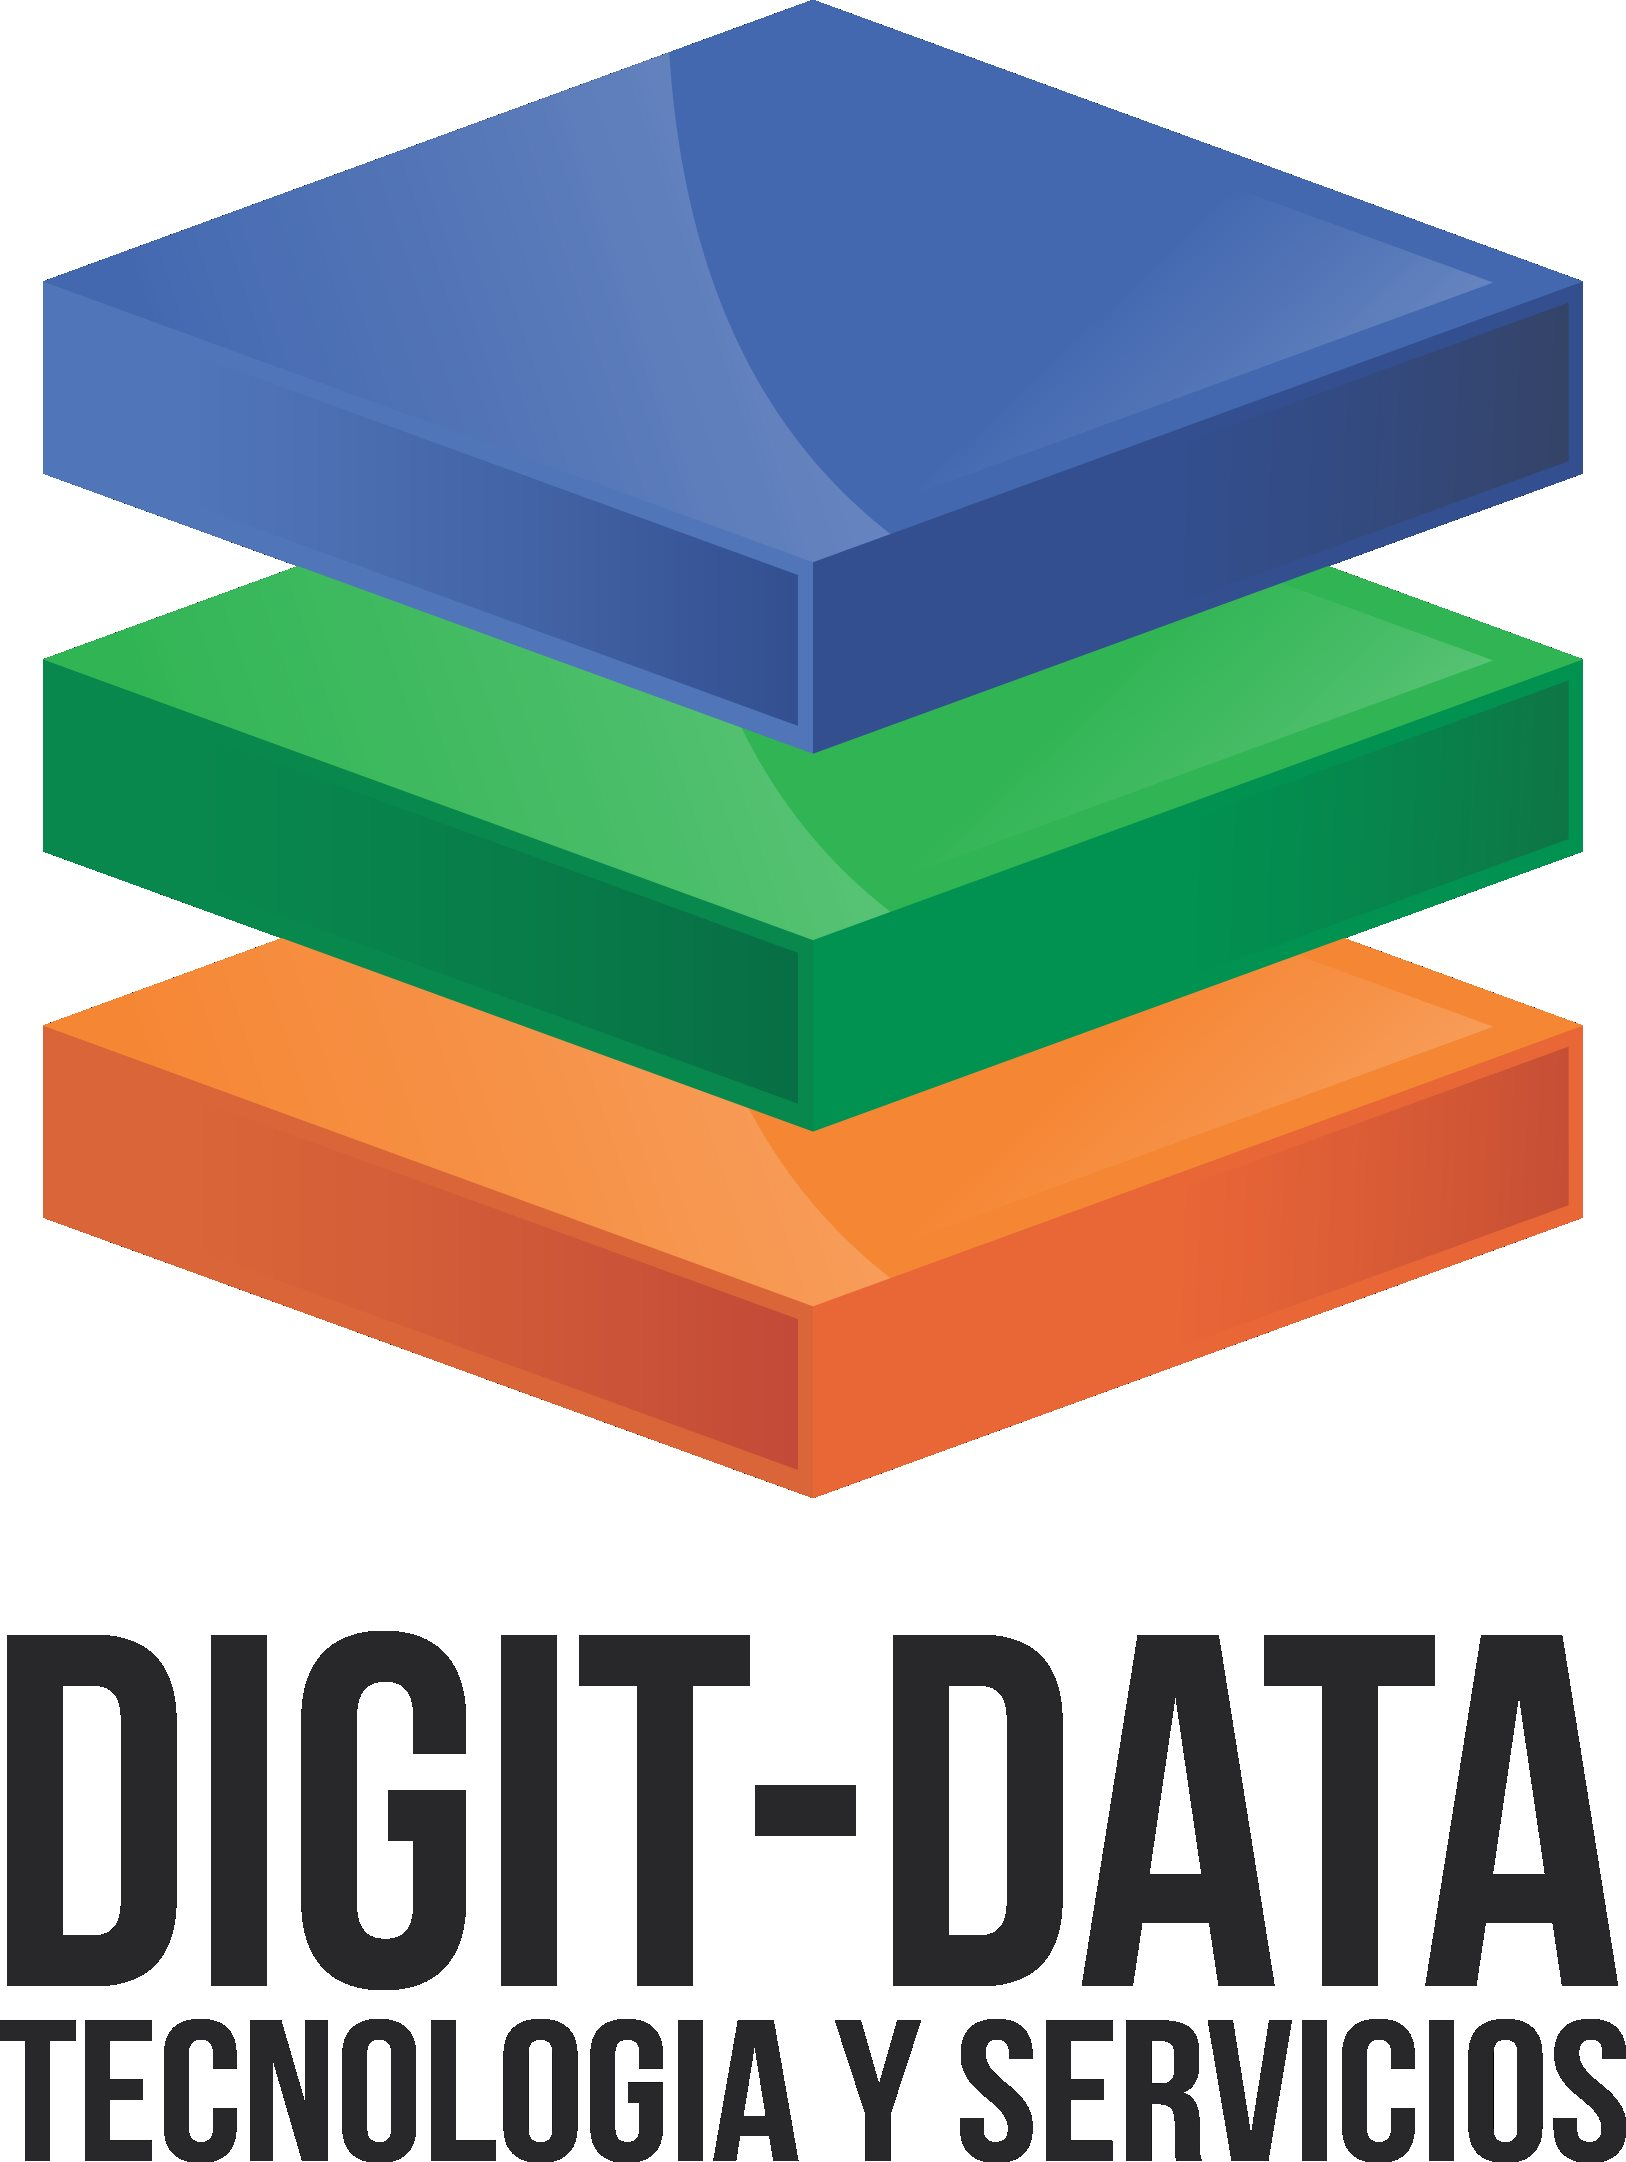 DIGITDATA SAS